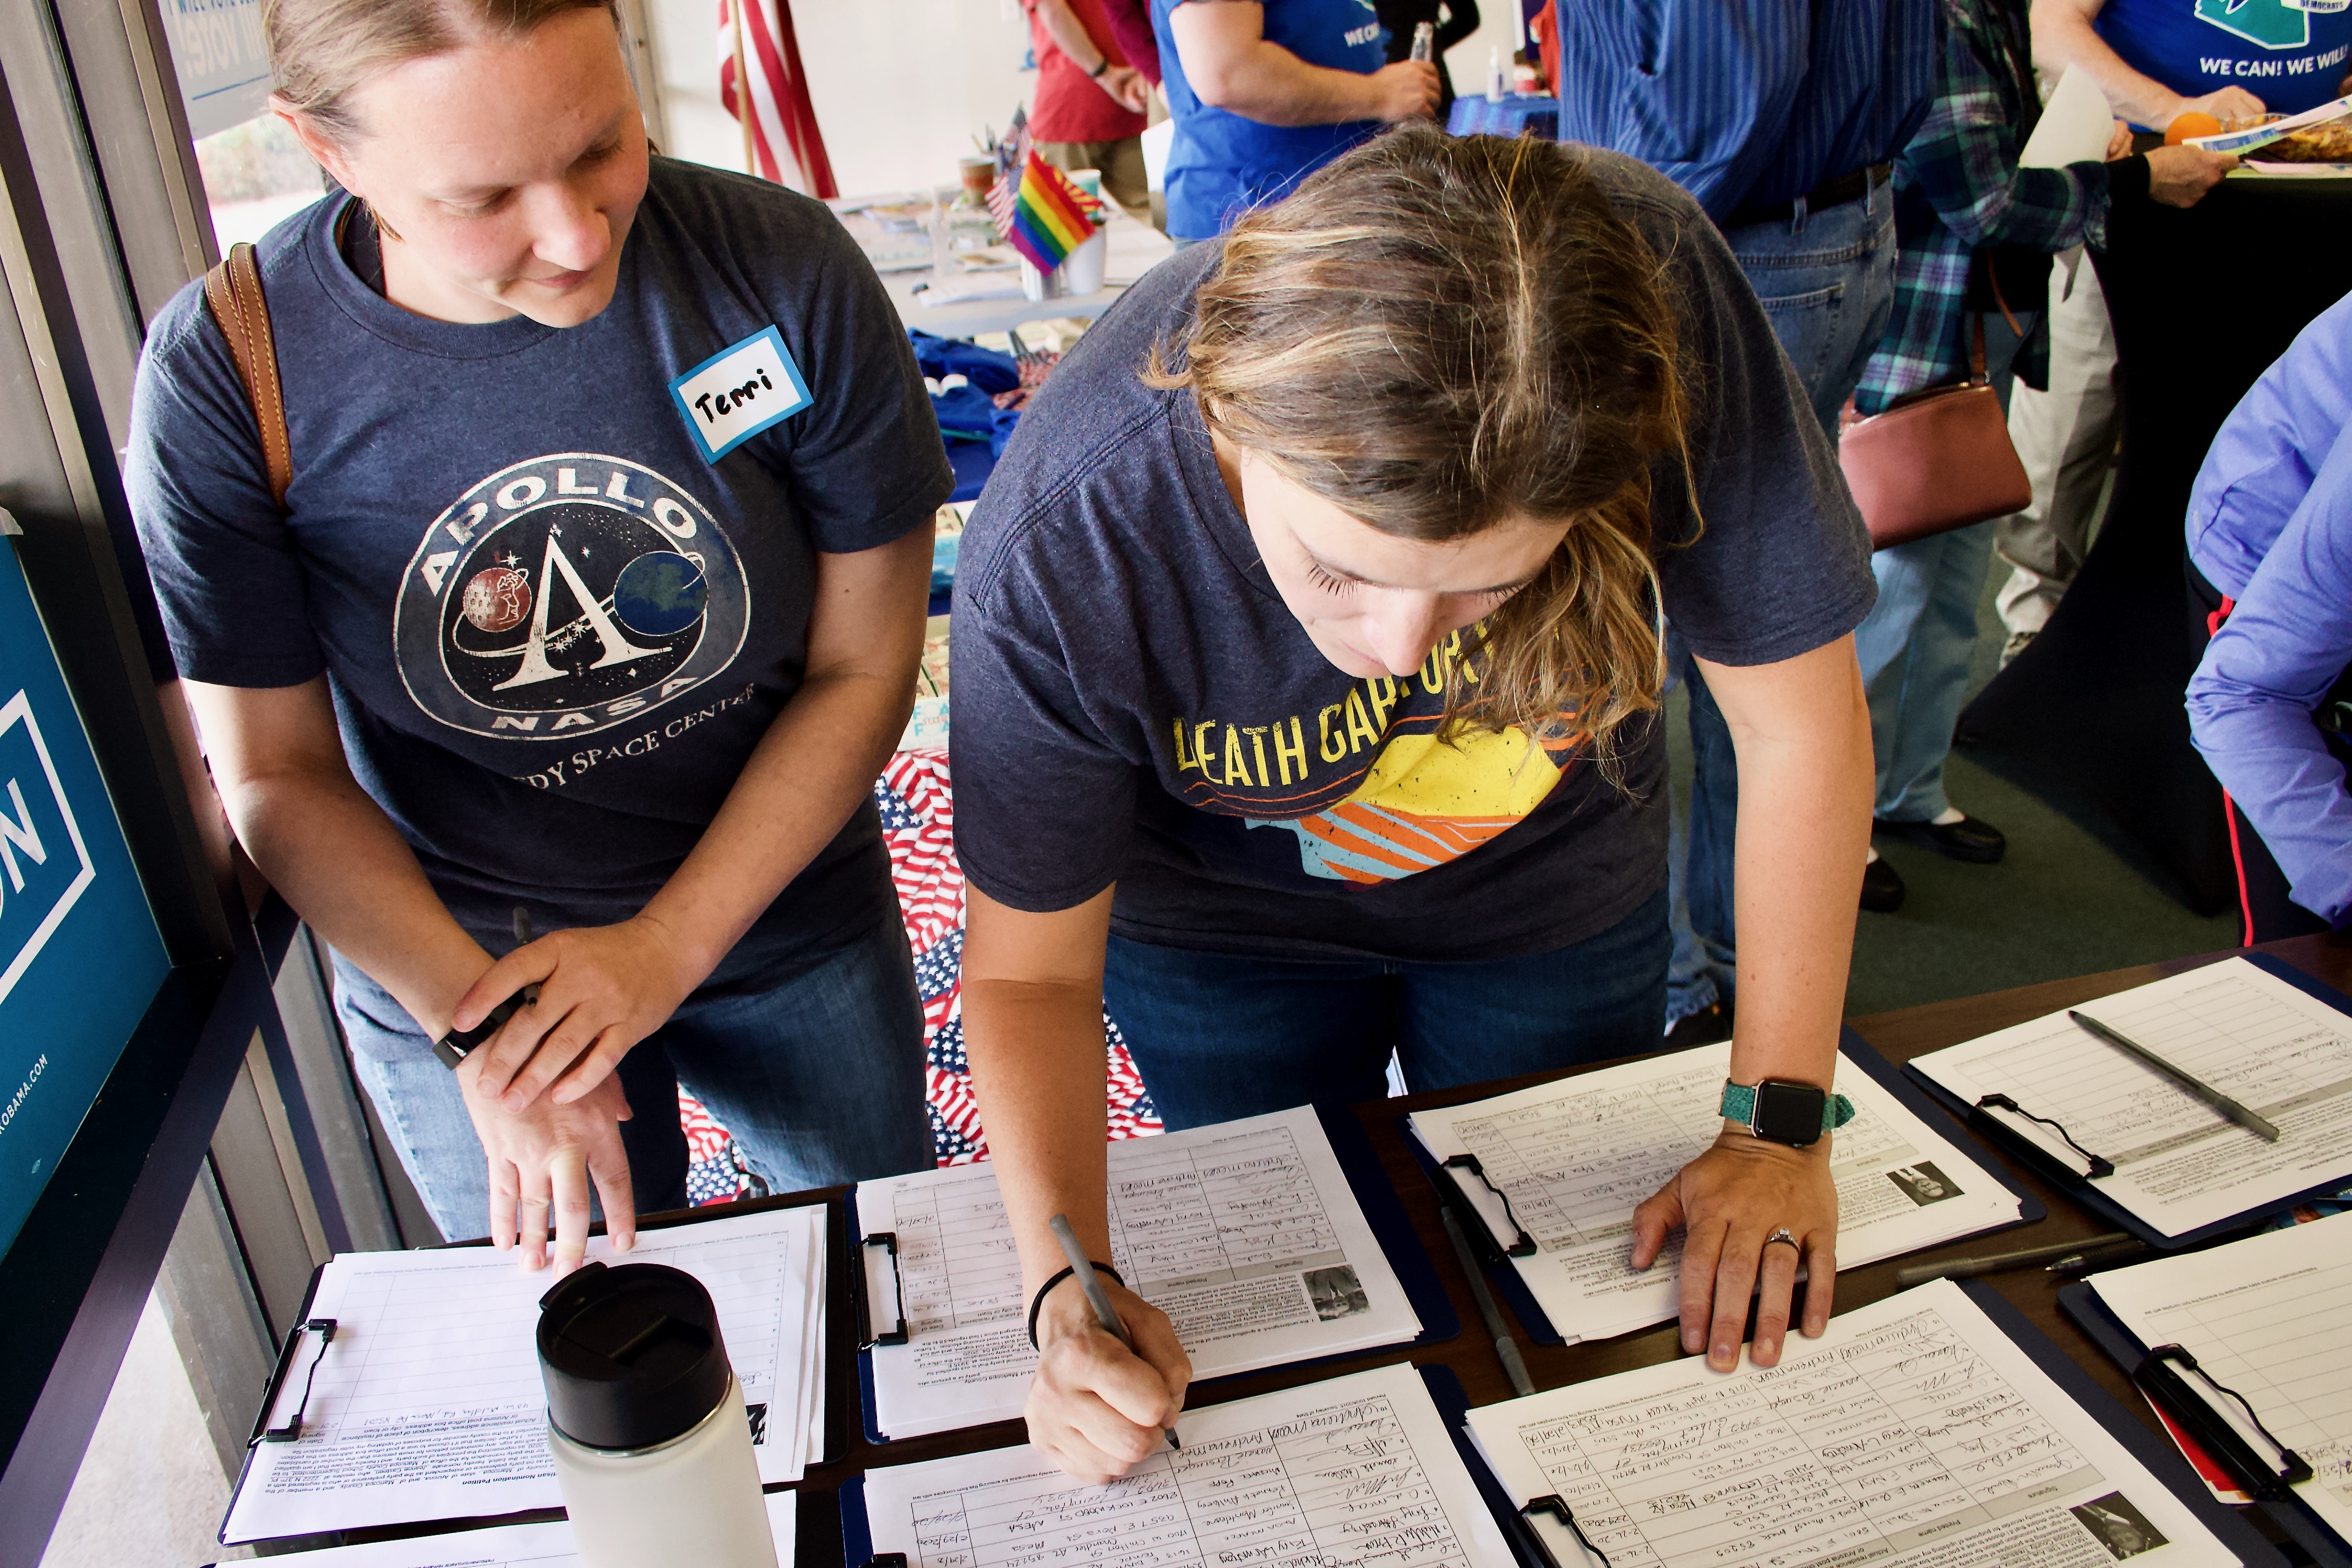 Two women signing petitions.